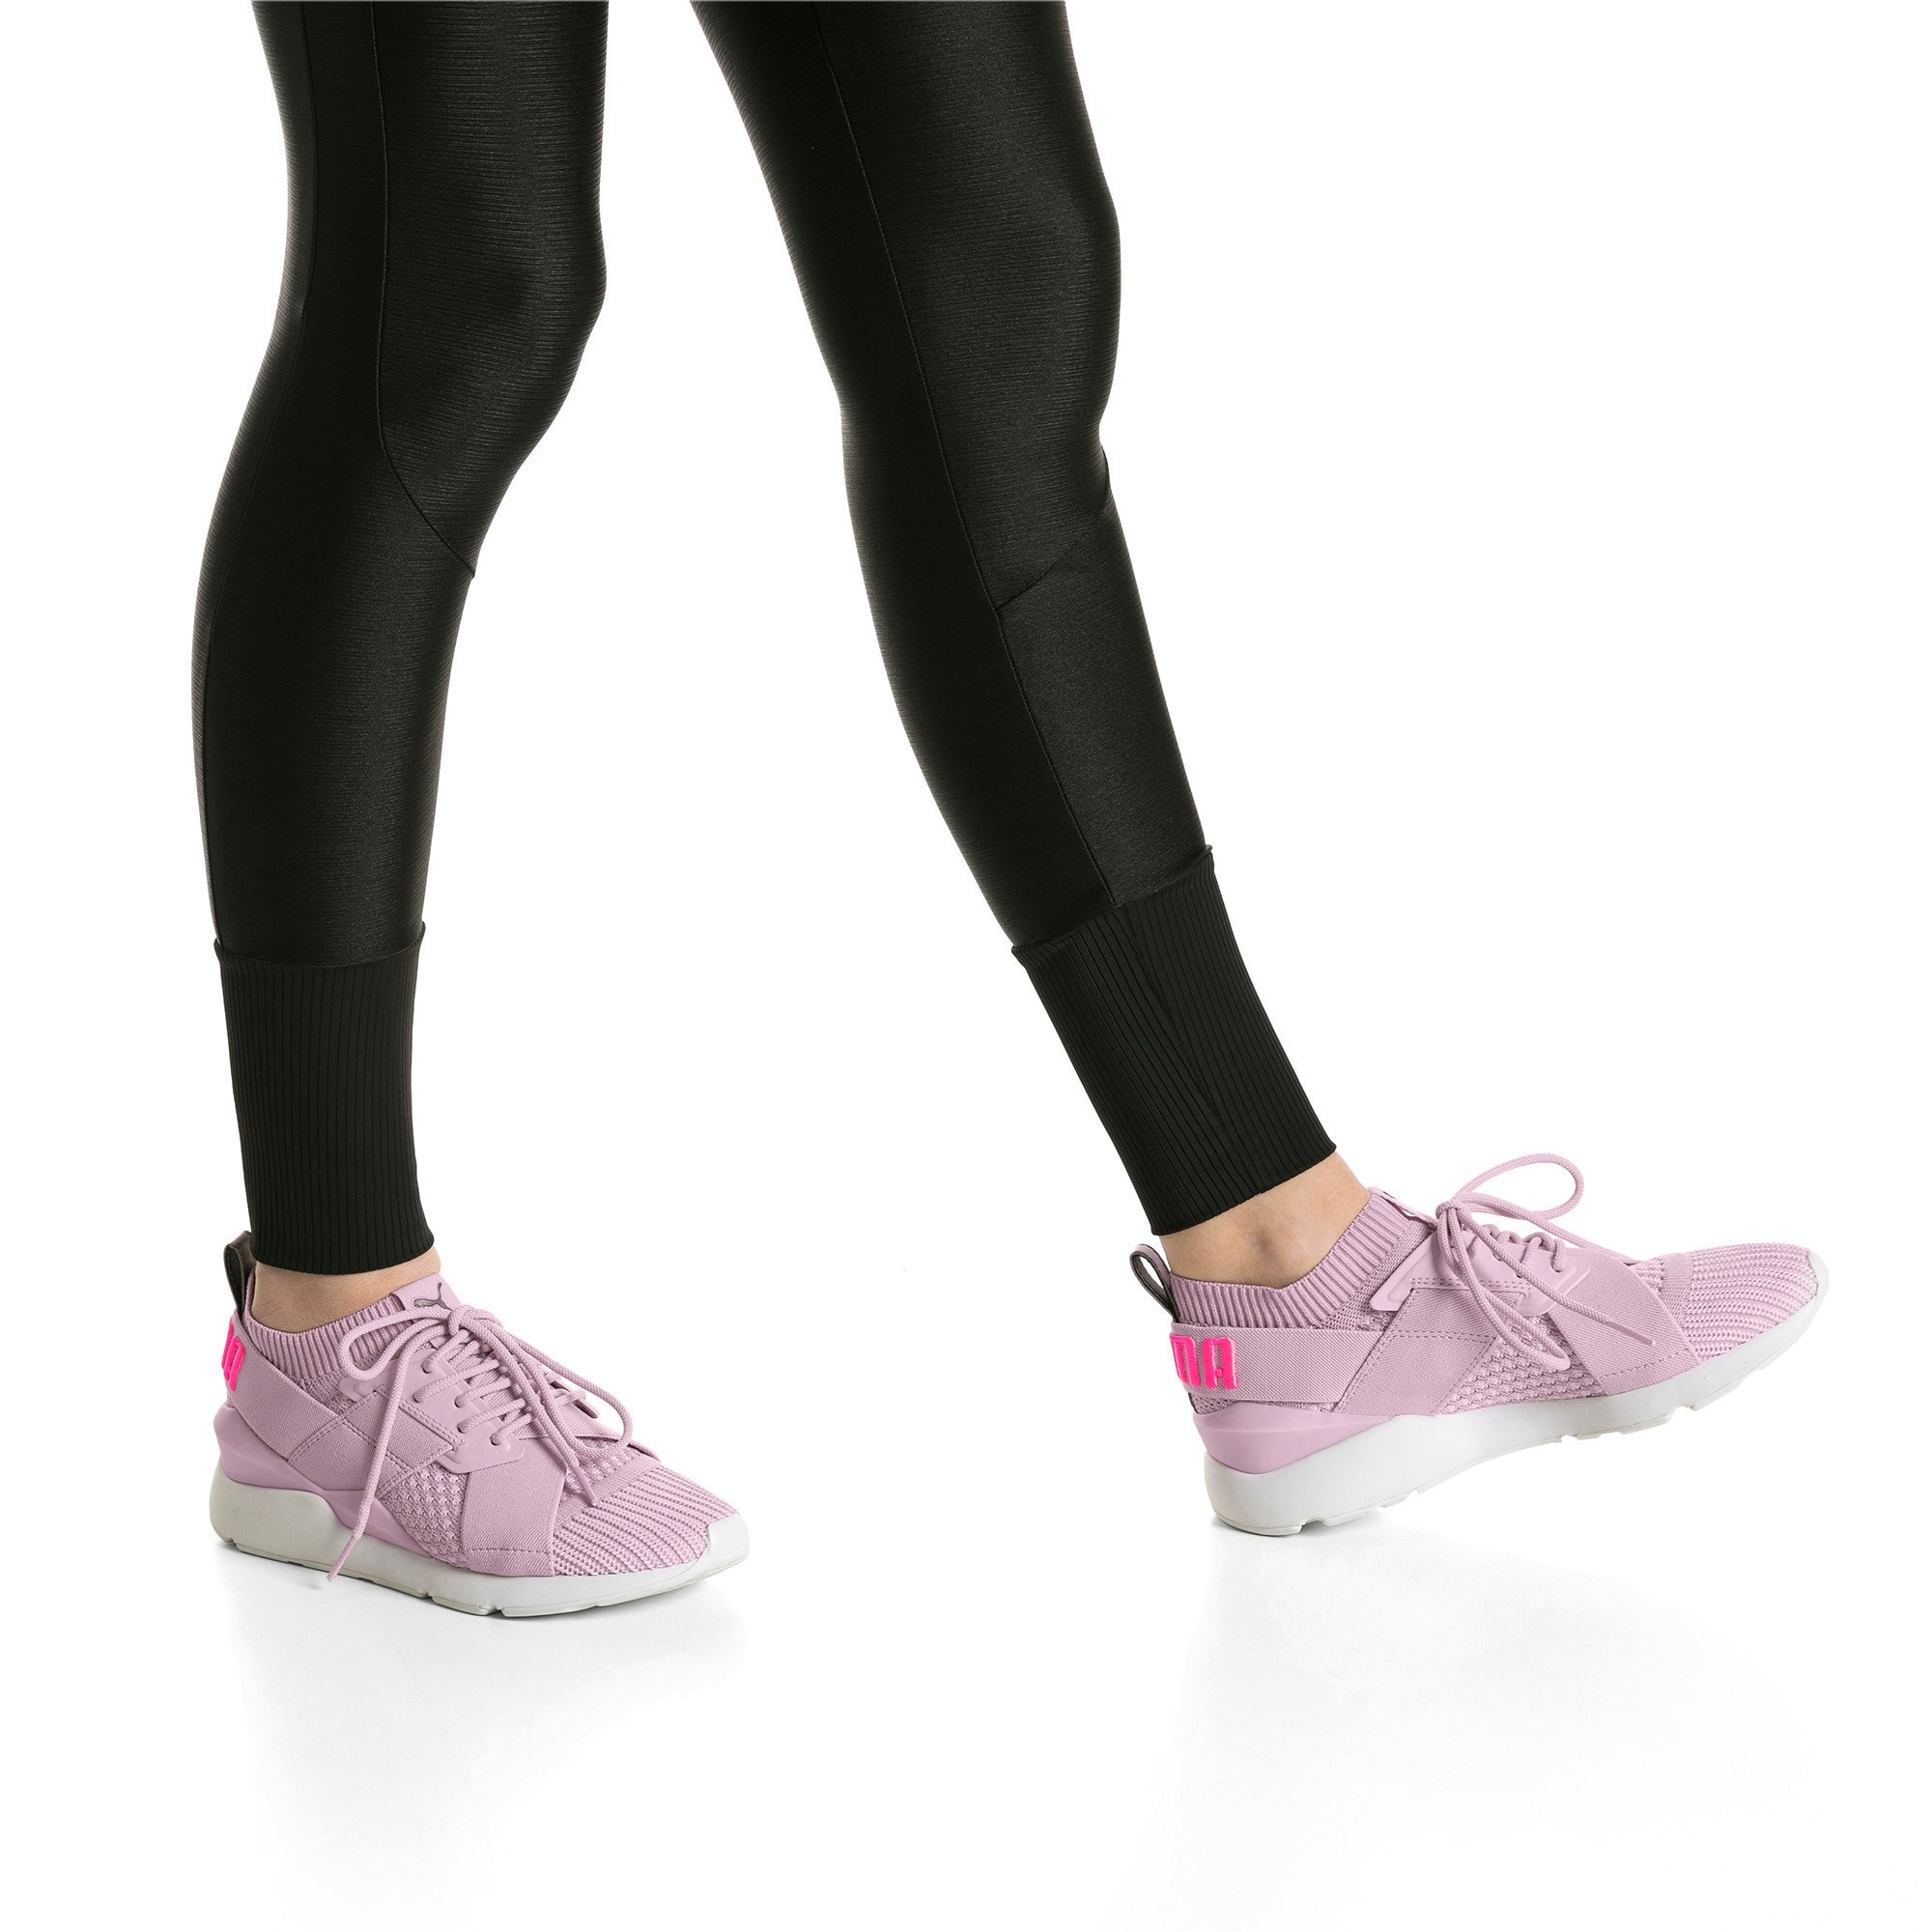 Thumbnail 7 of Muse evoKNIT Women's Trainers, Winsome Orchid, medium-IND